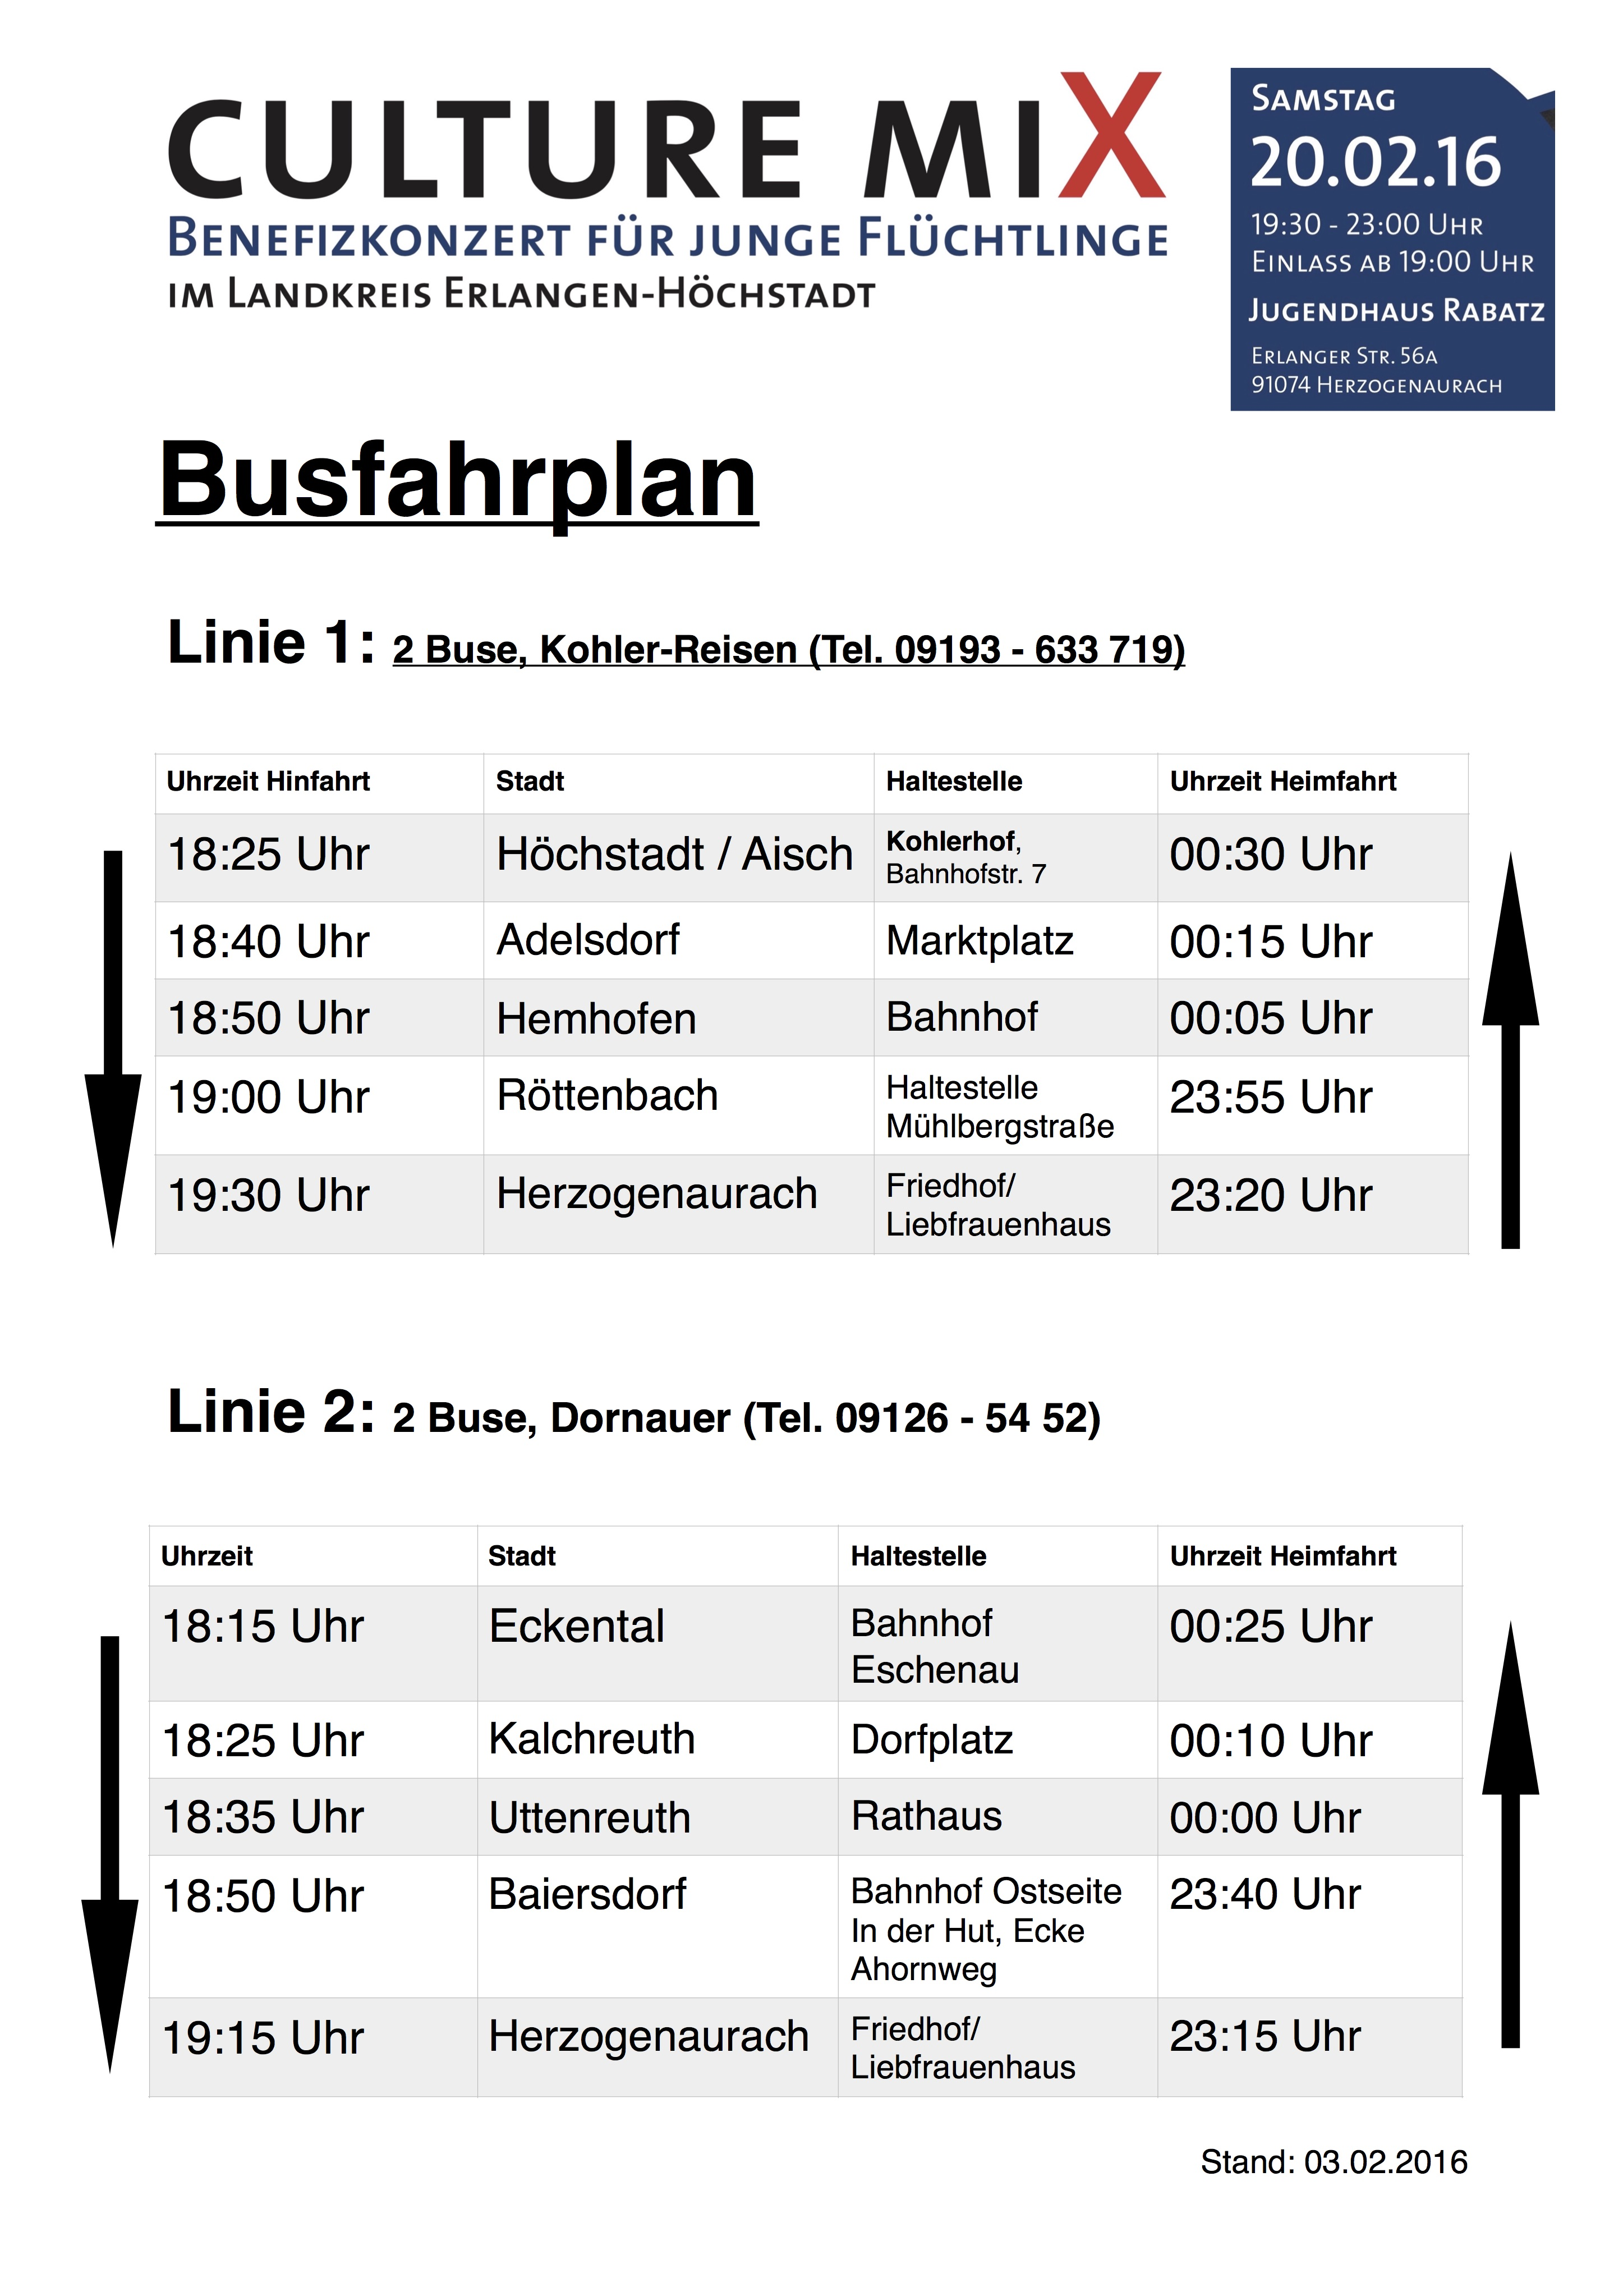 Busfahrplan Culture Mix Stand 3.2.